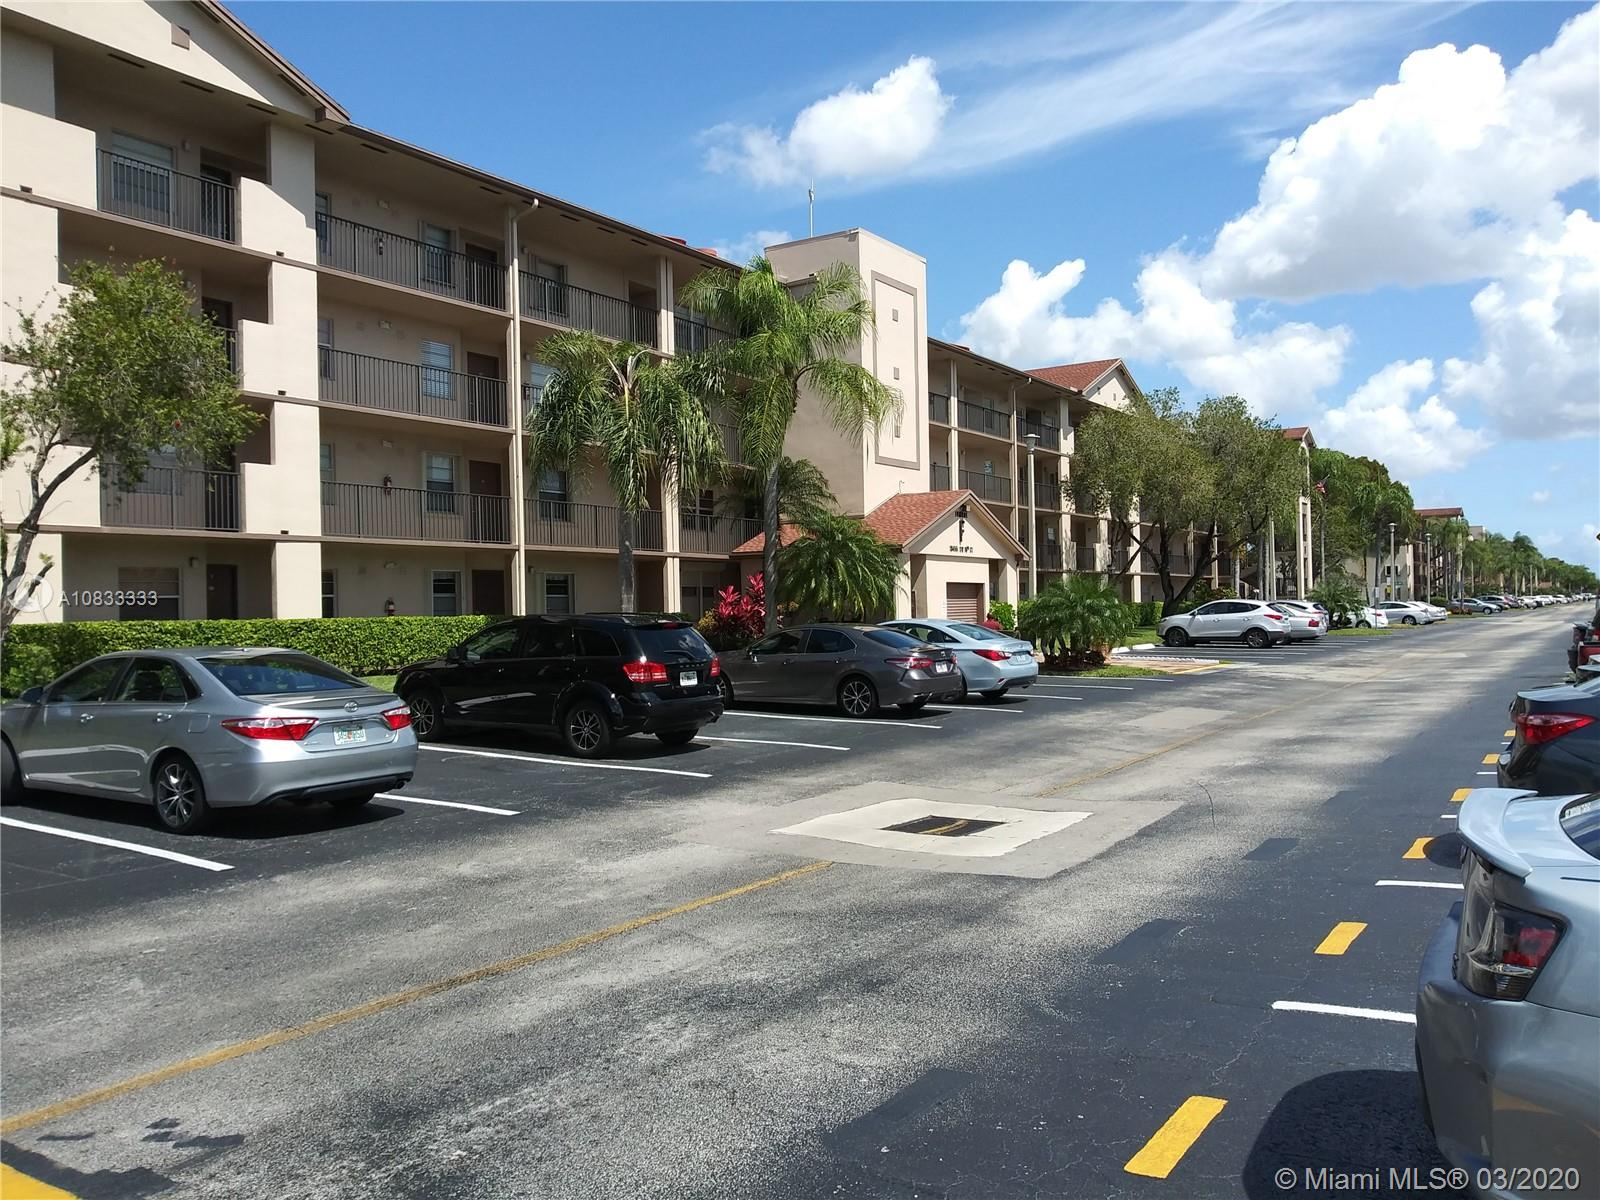 13455 SW 16th Ct # 212F, Pembroke Pines, Florida 33027, 1 Bedroom Bedrooms, 1 Room Rooms,1 BathroomBathrooms,Residential,For Sale,13455 SW 16th Ct # 212F,A10833333